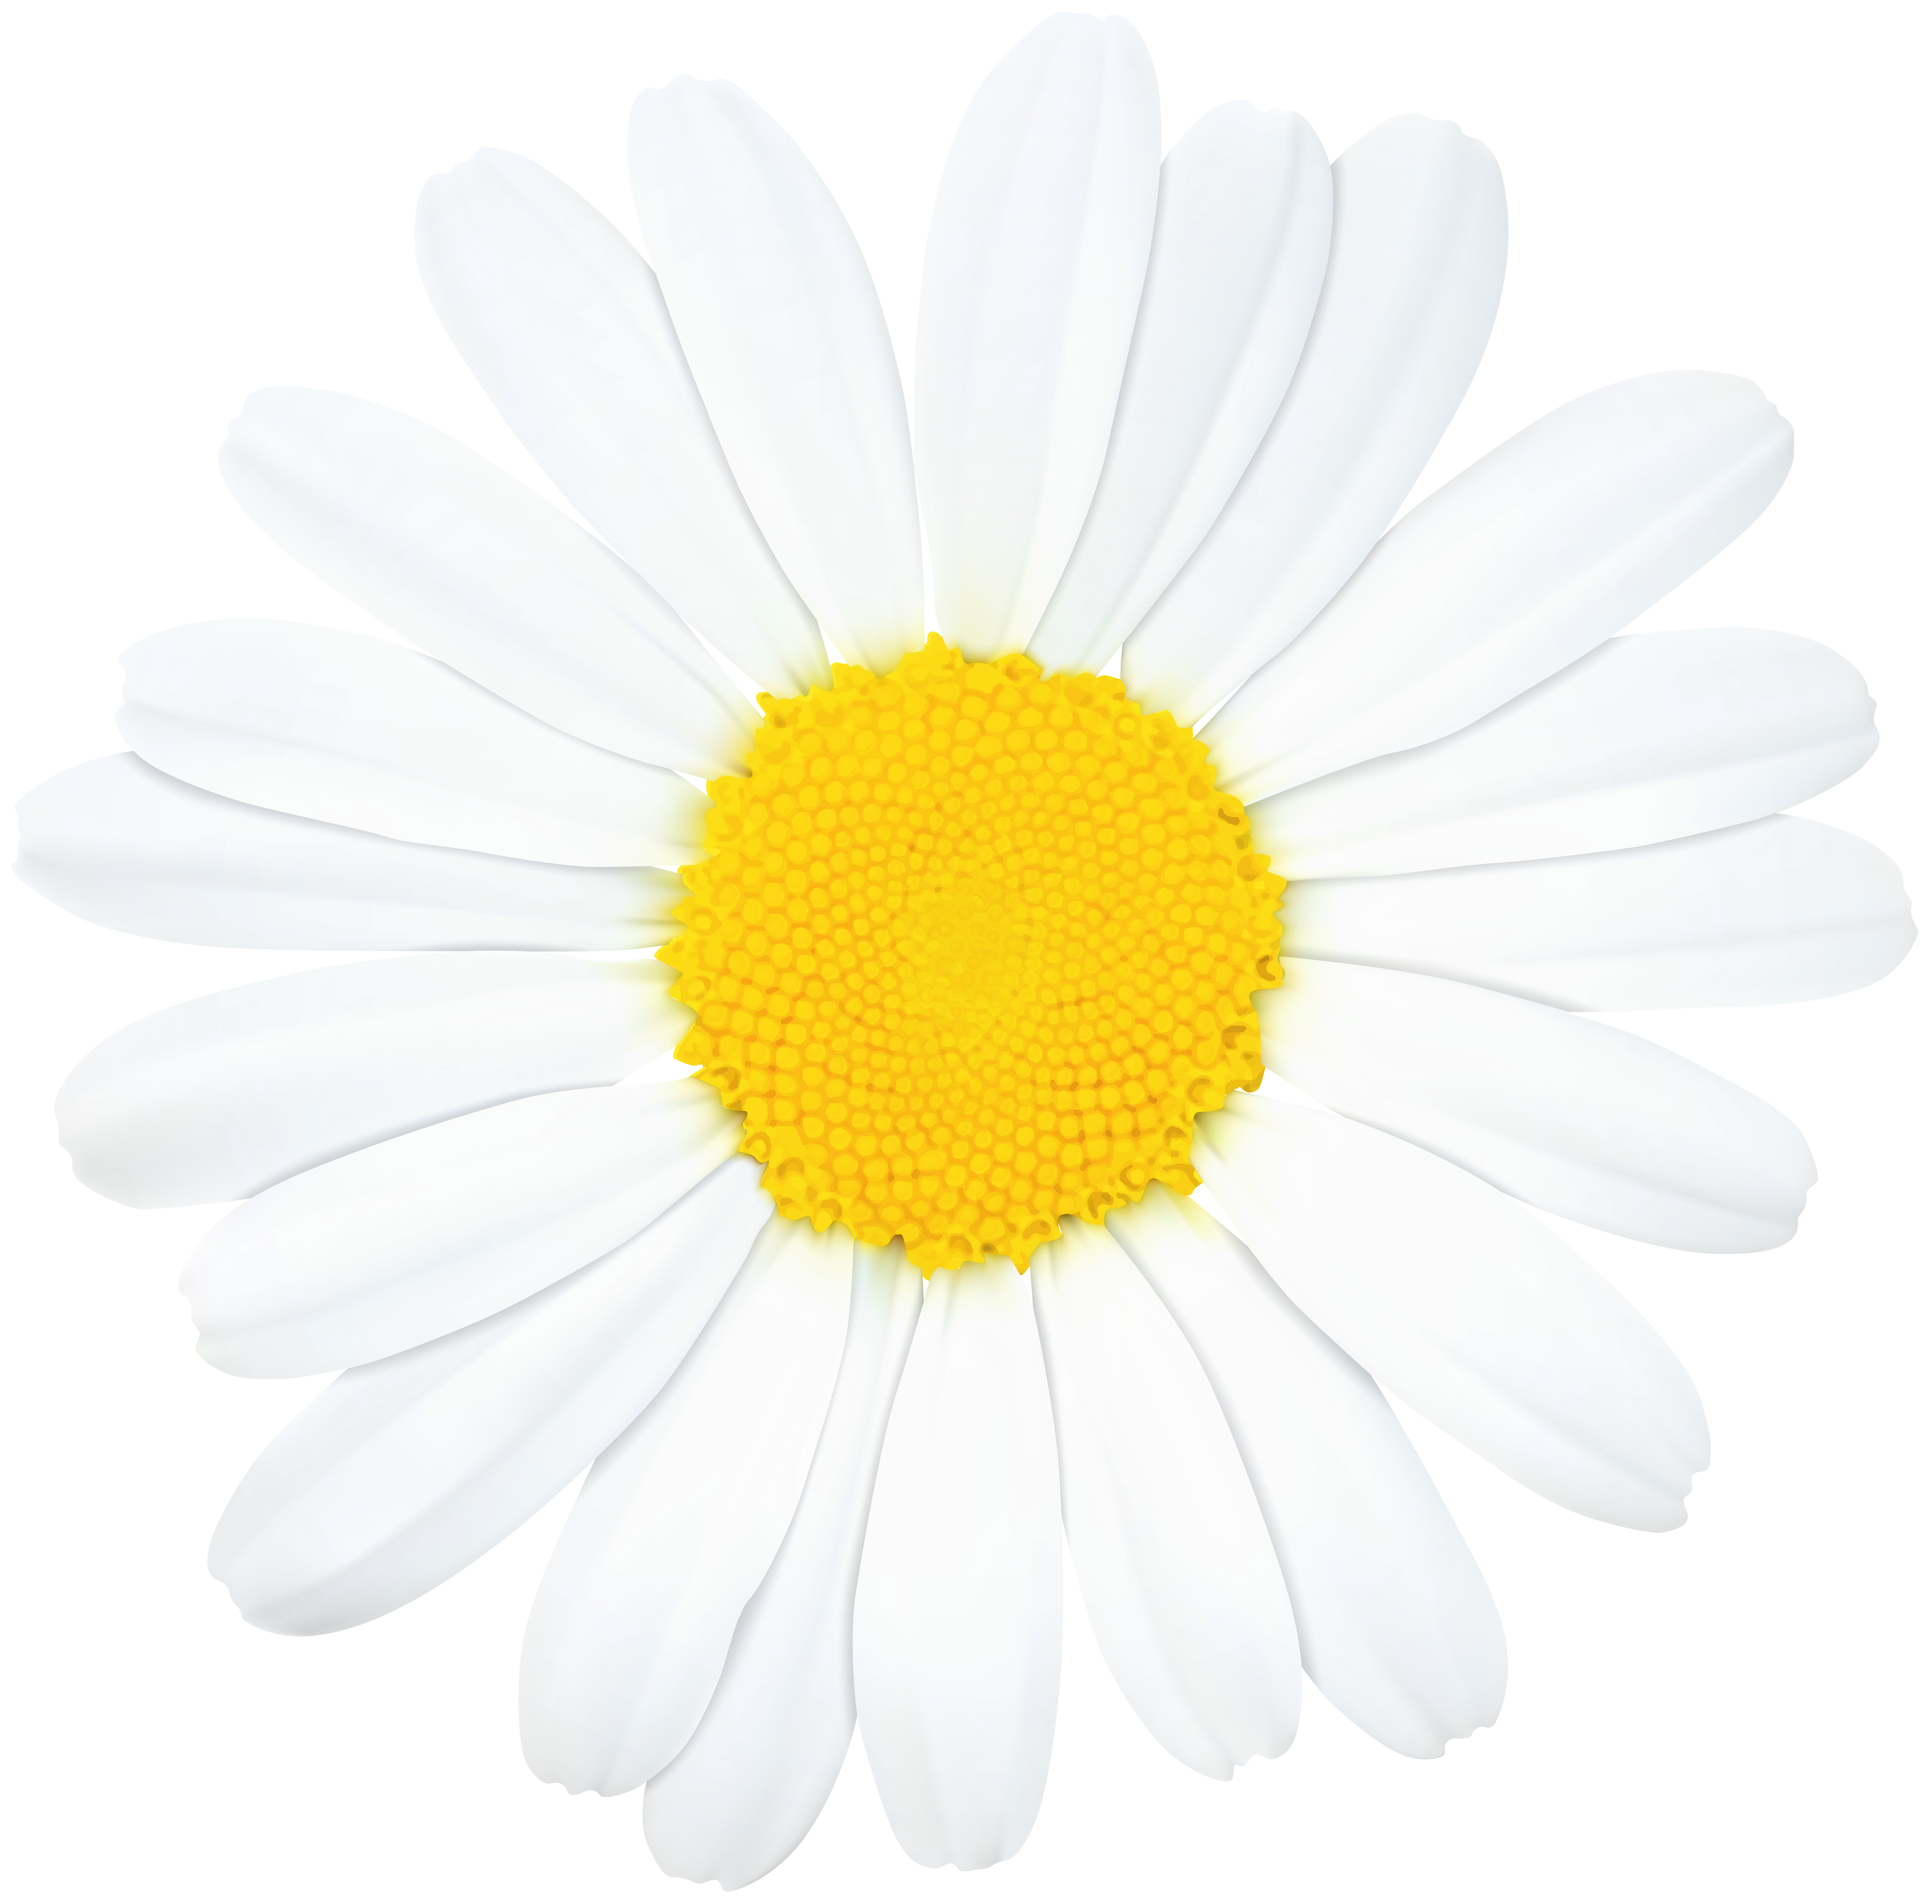 Chrysanthemum flower clipart transparent Roman chamomile Oxeye daisy Transvaal daisy Chrysanthemum Common ... transparent